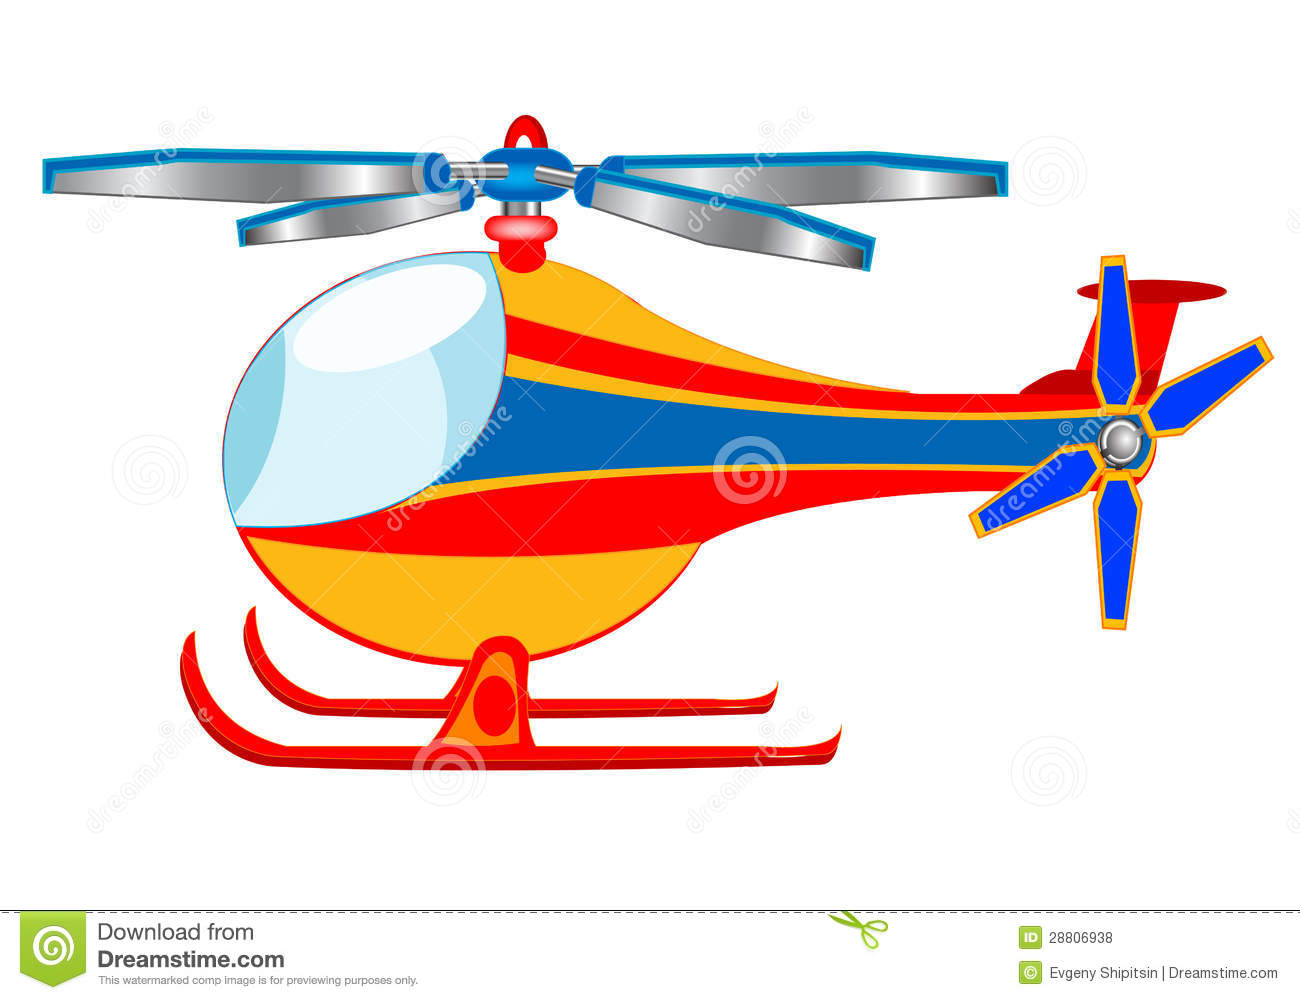 of the cartoon helicopter